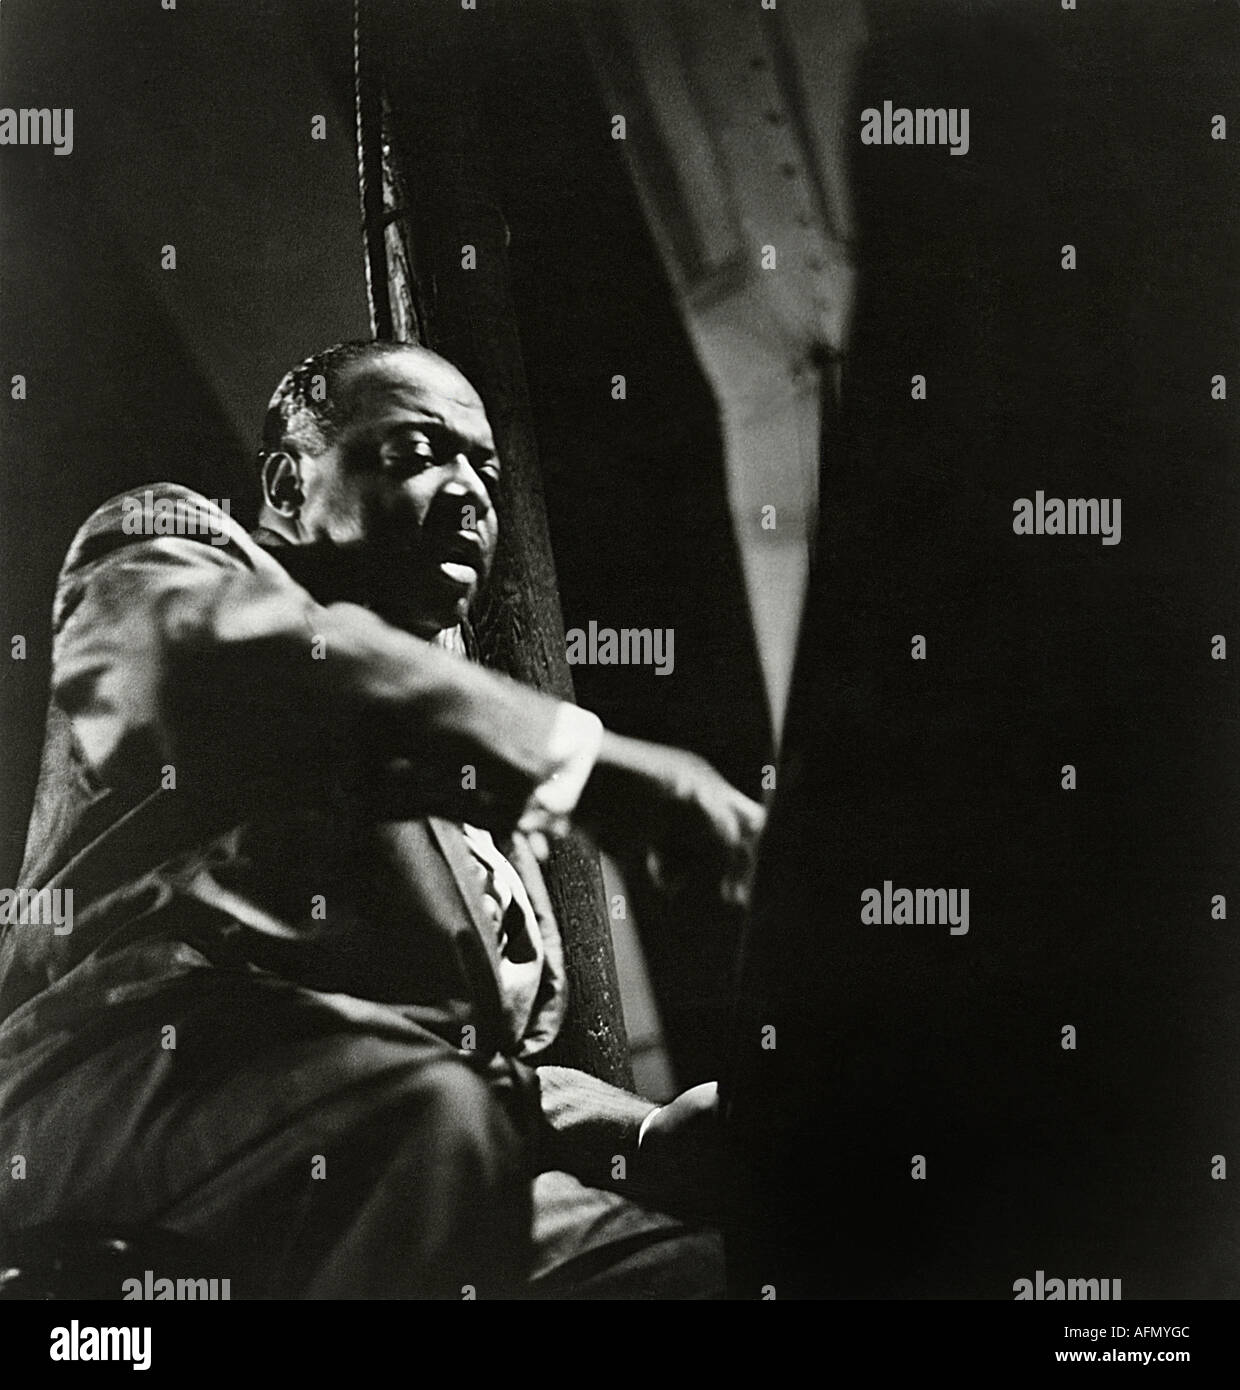 COUNT BASIE US musician and band leader - Stock Image